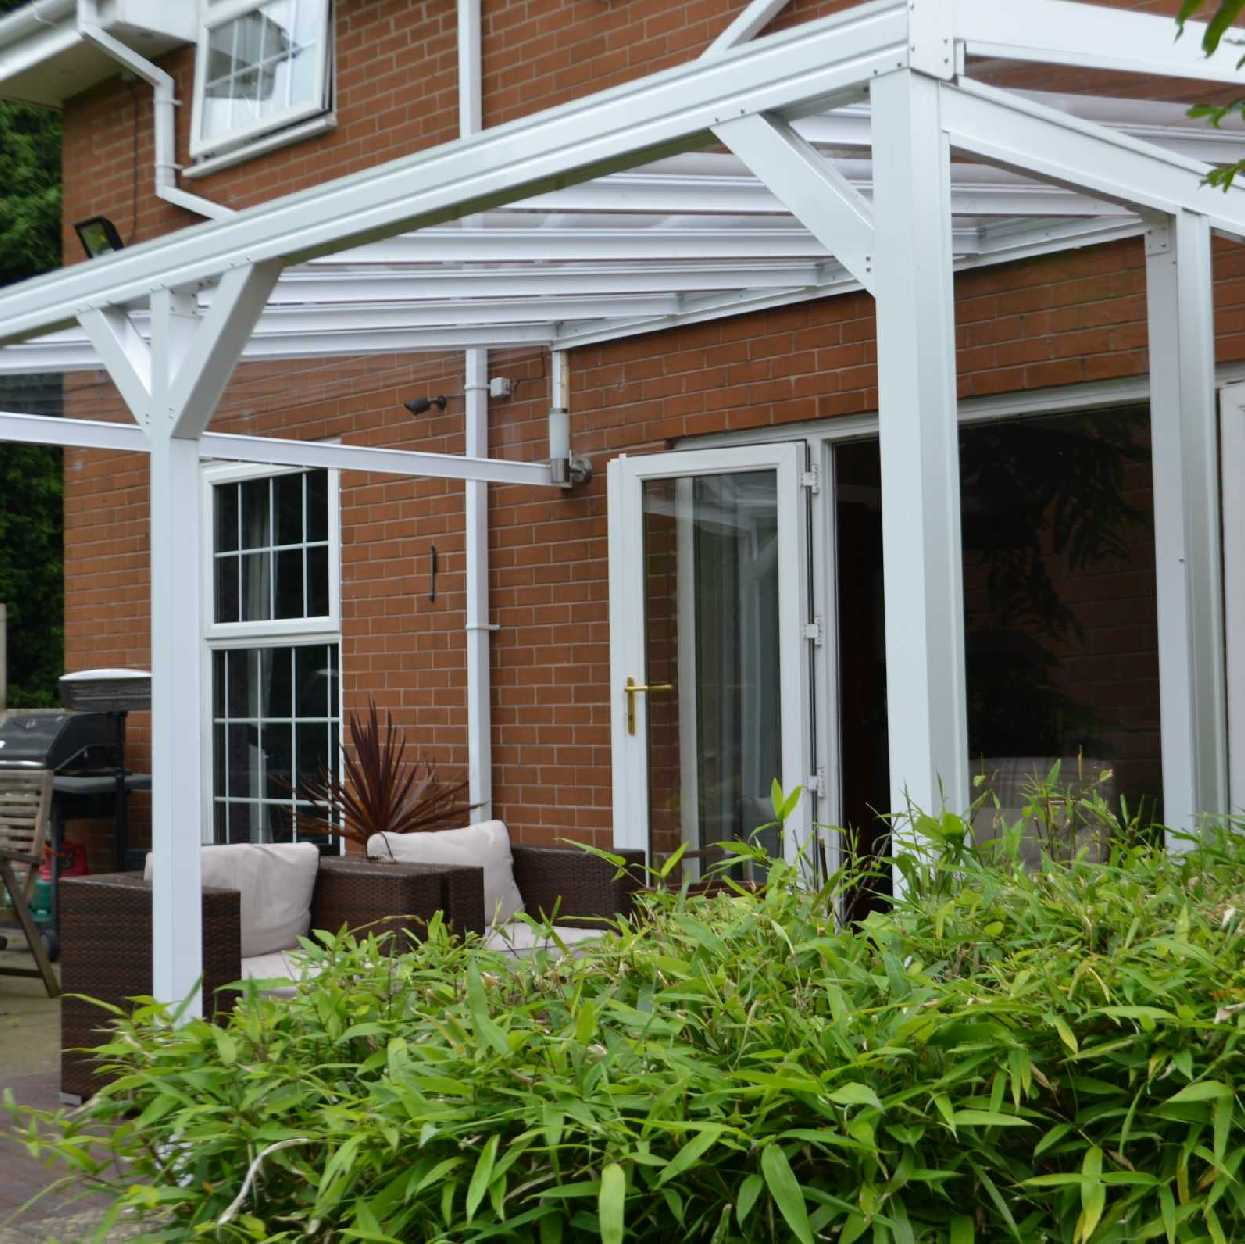 Omega Smart White Lean-To Canopy with 6mm Glass Clear Plate Polycarbonate Glazing - 6.3m (W) x 2.0m (P), (4) Supporting Posts from Omega Build